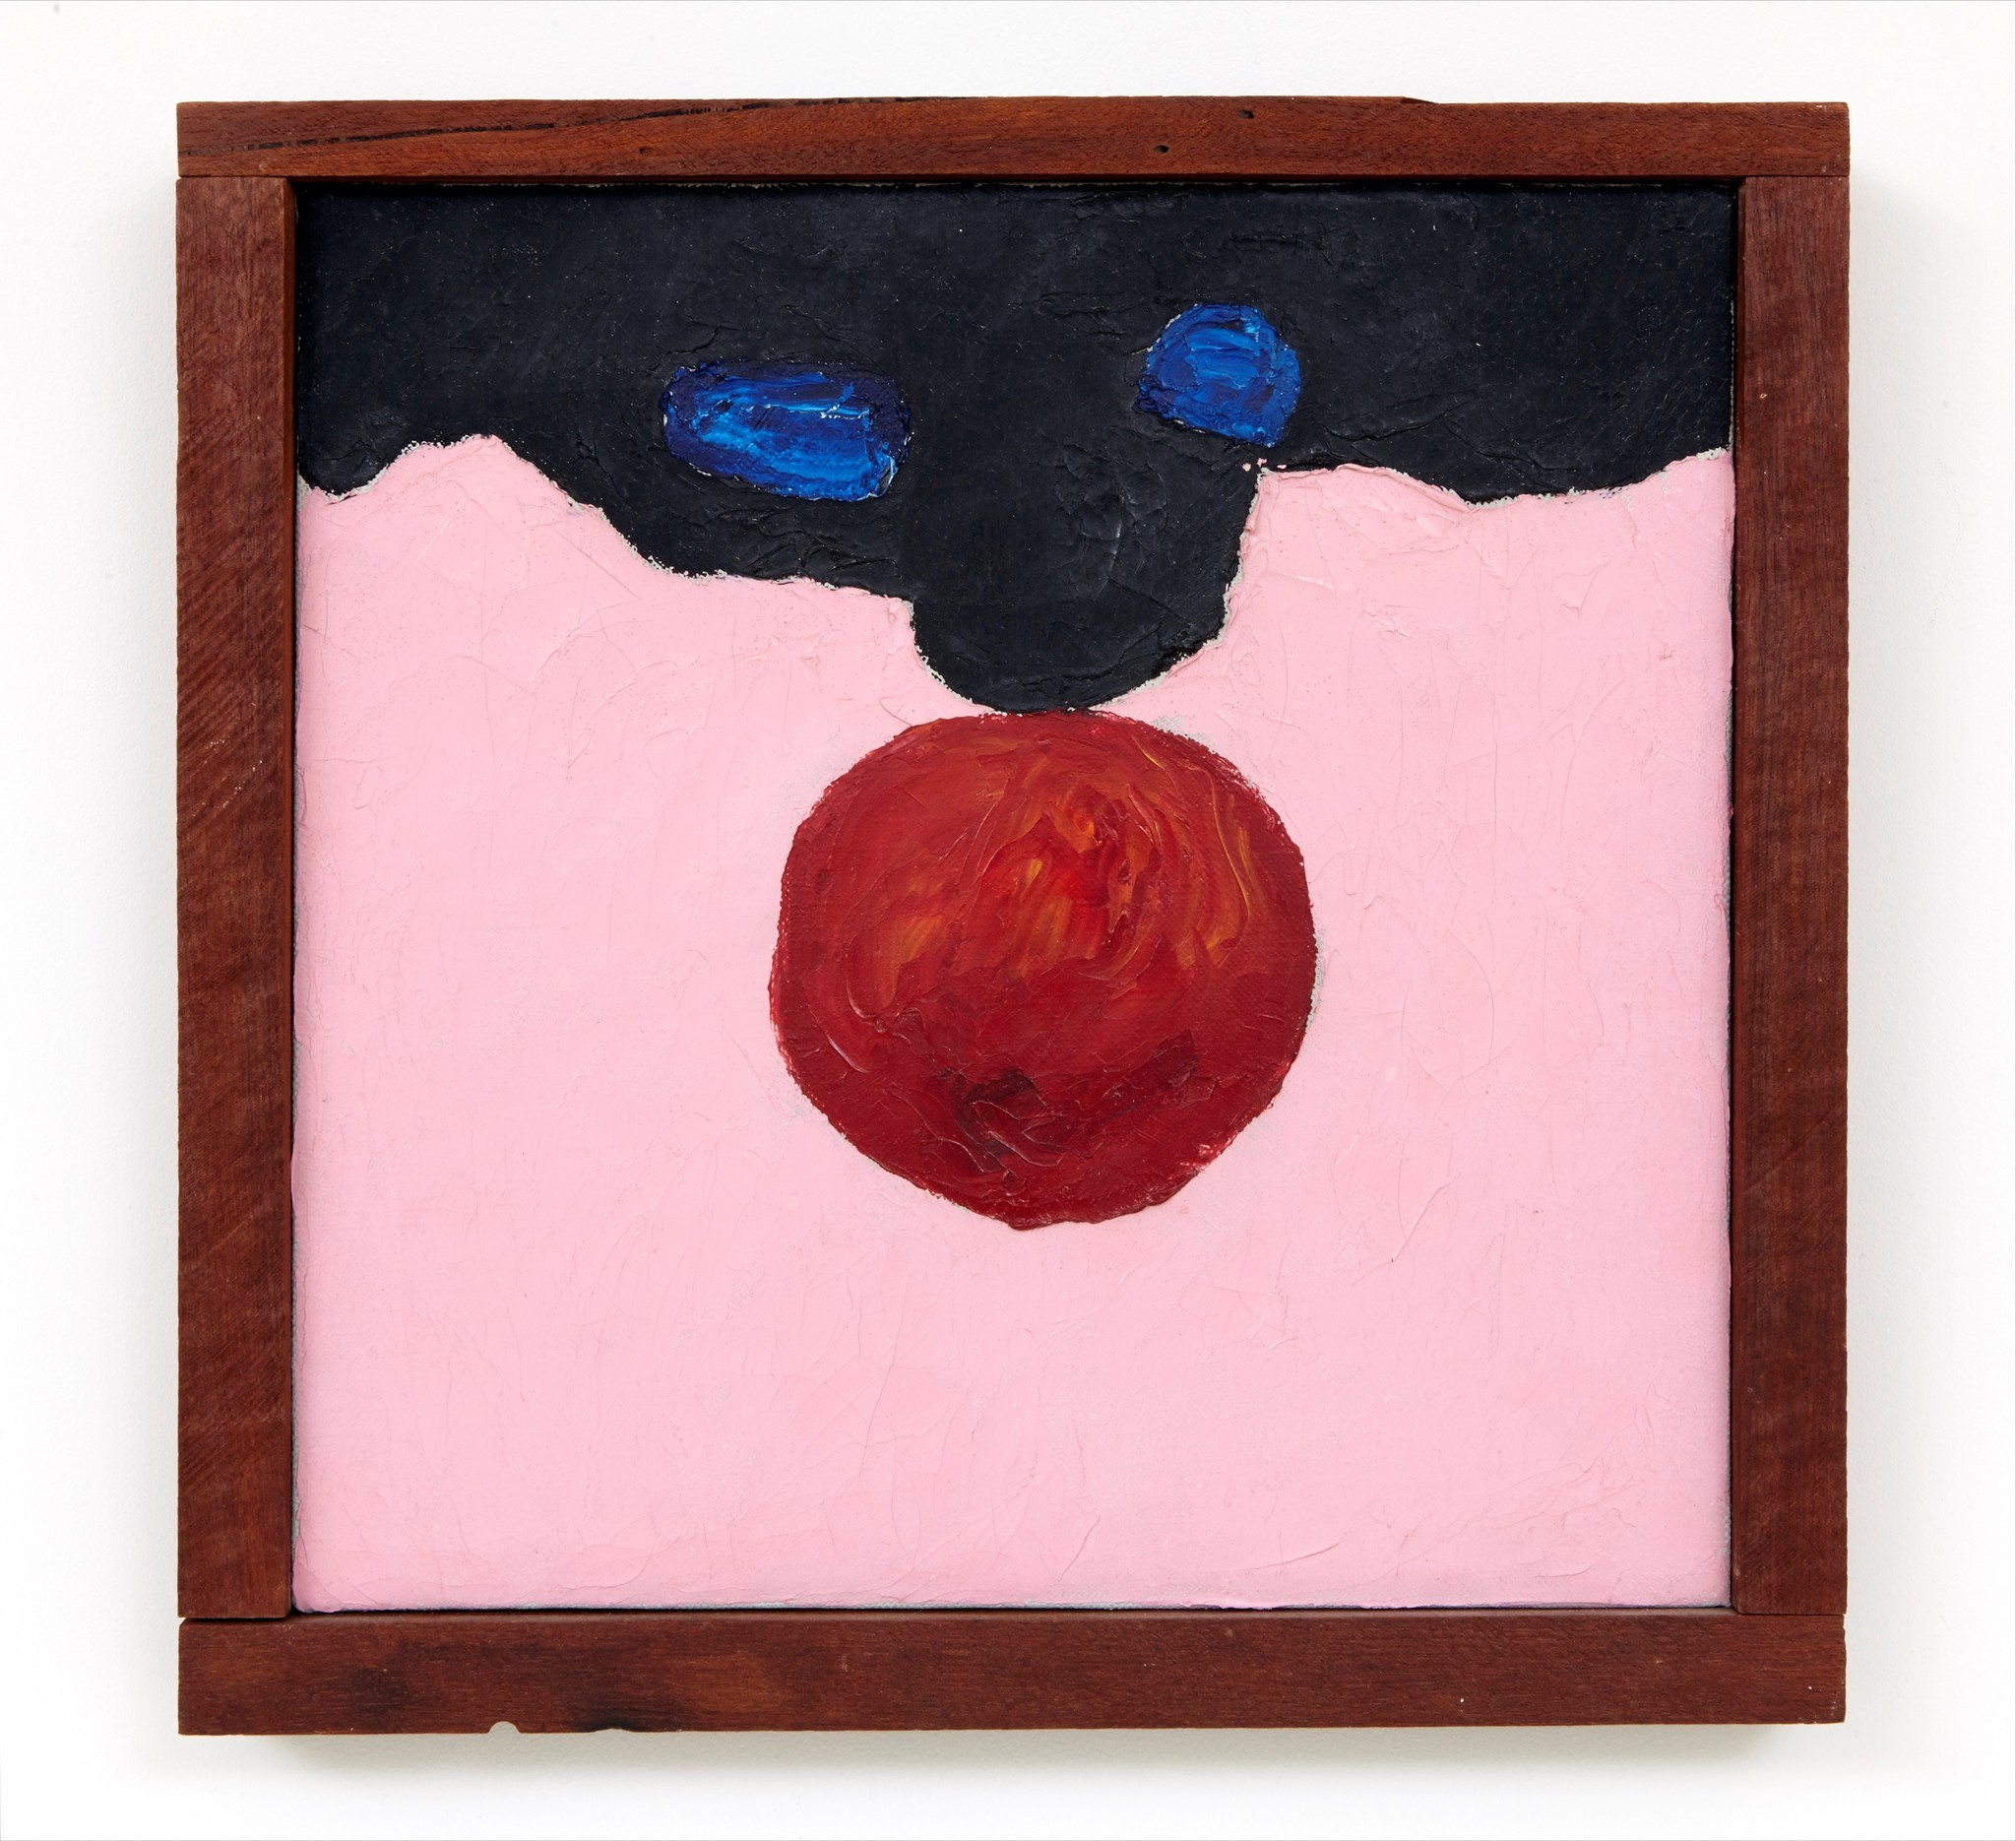 "Forrest Bess, ""Untitled No. 6,"" 1957, oil on canvas in artist's frame, 11.5 inches by 11.75 inches."